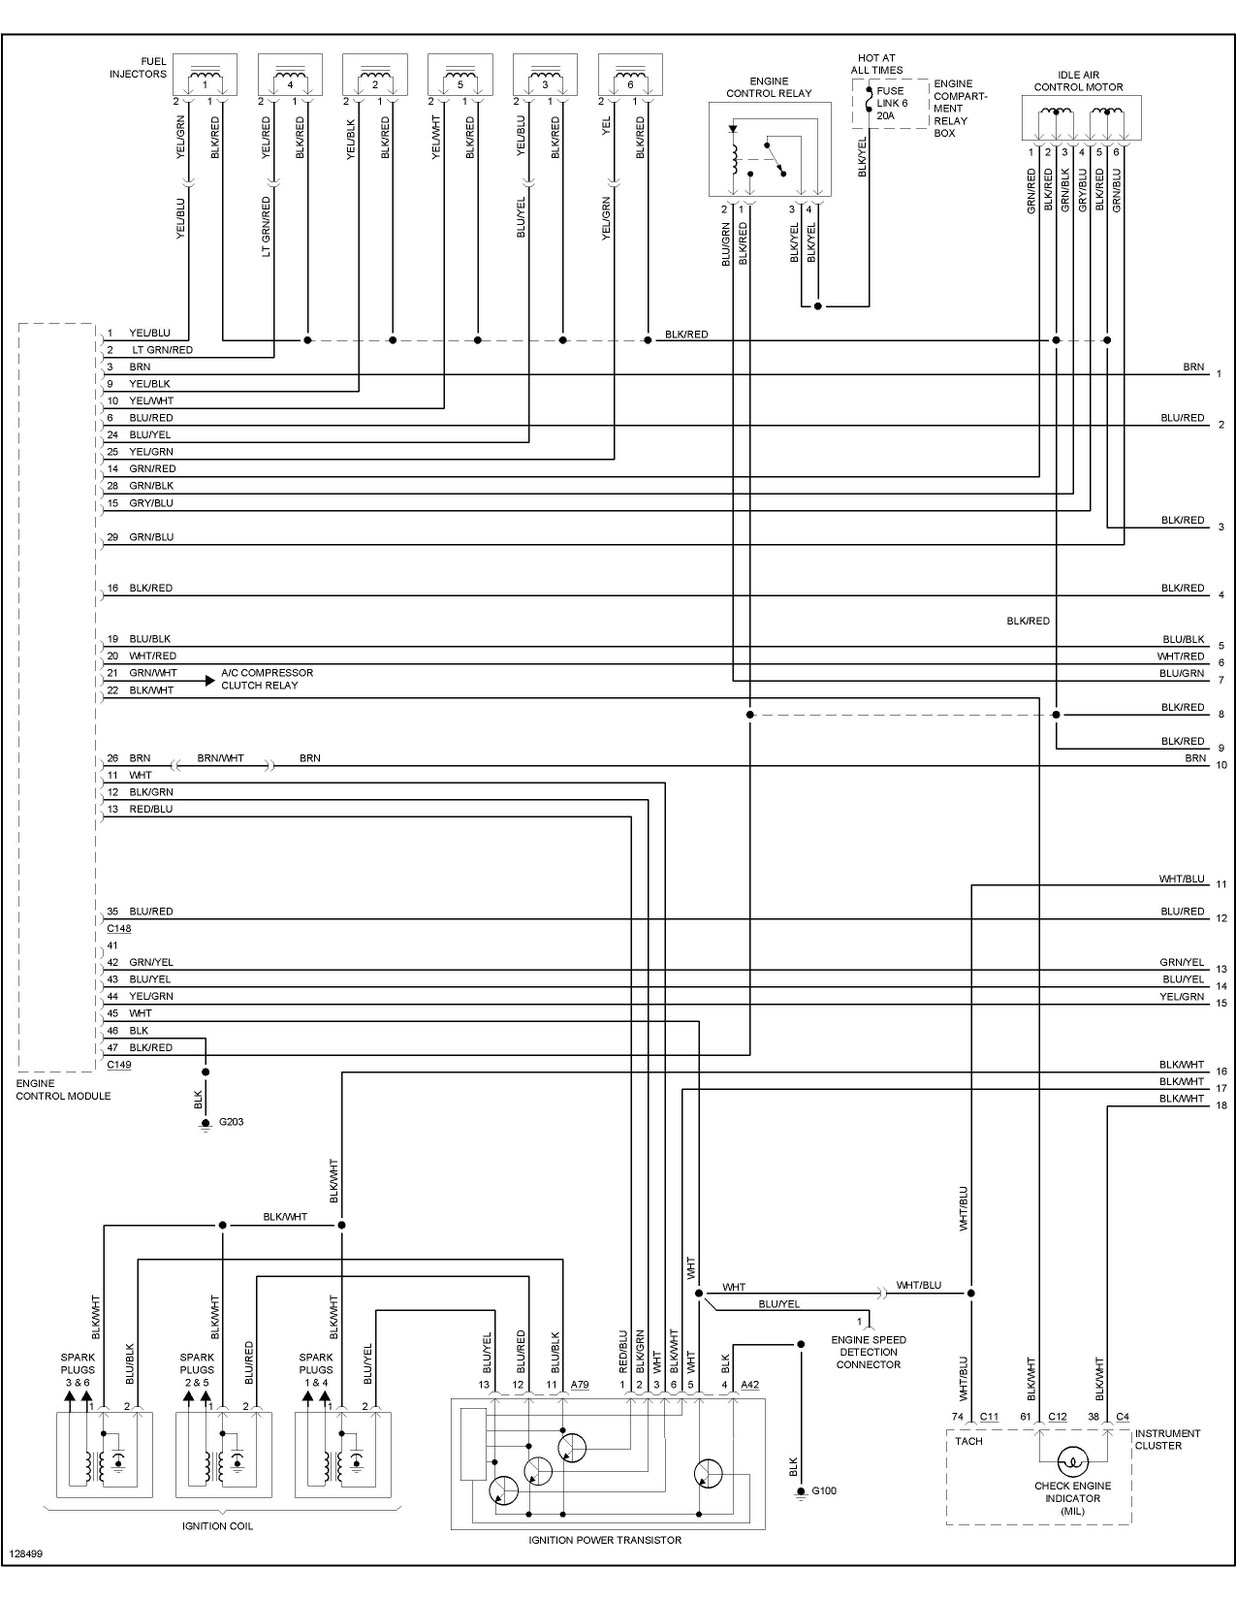 2002 montero sport fuse box diagram 2002 free engine [ 1236 x 1600 Pixel ]